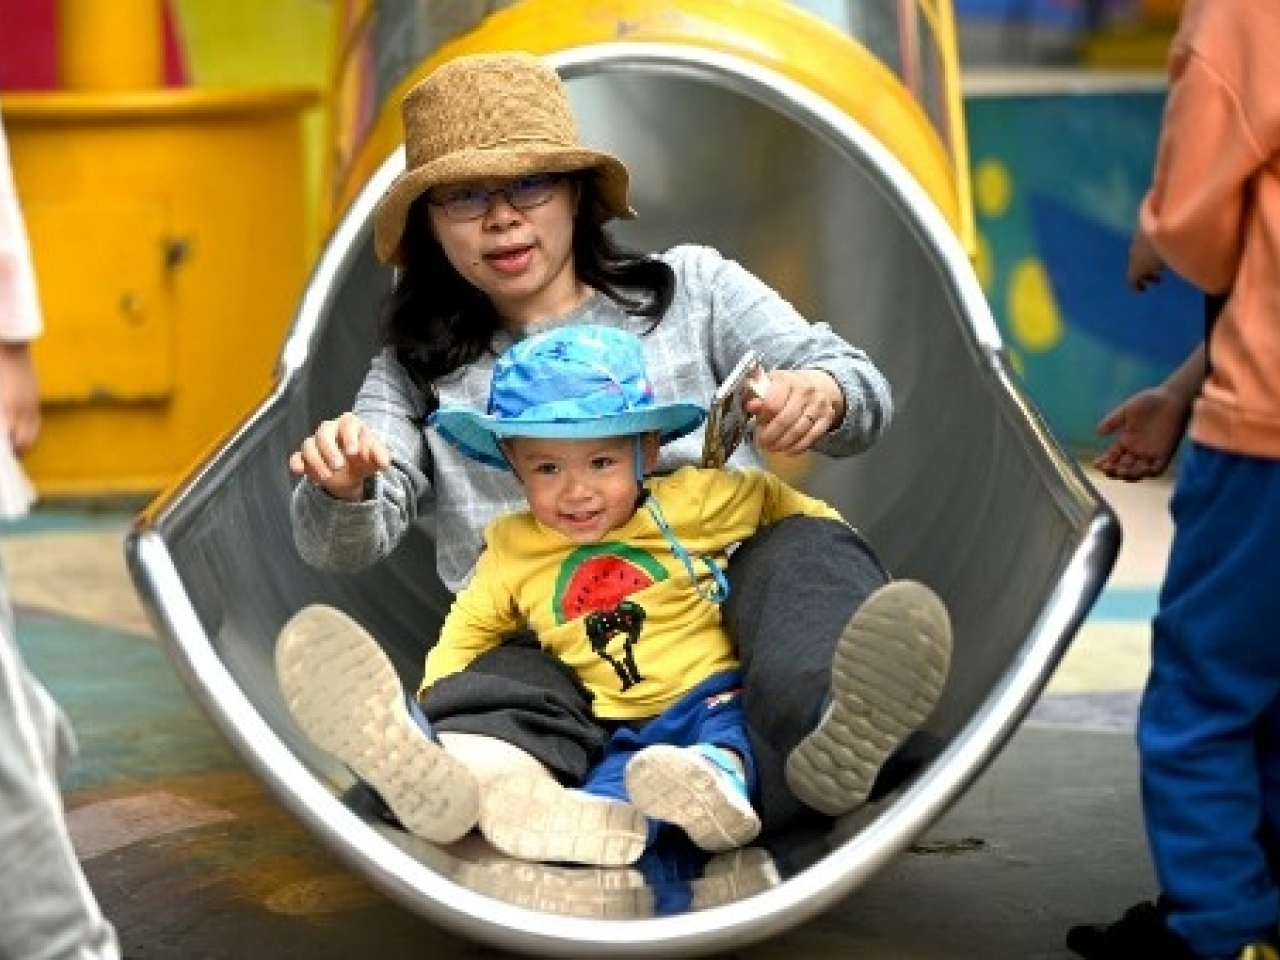 The soaring costs of raising children on the mainland has led to the slowest population growth in decades. Photo: AFP